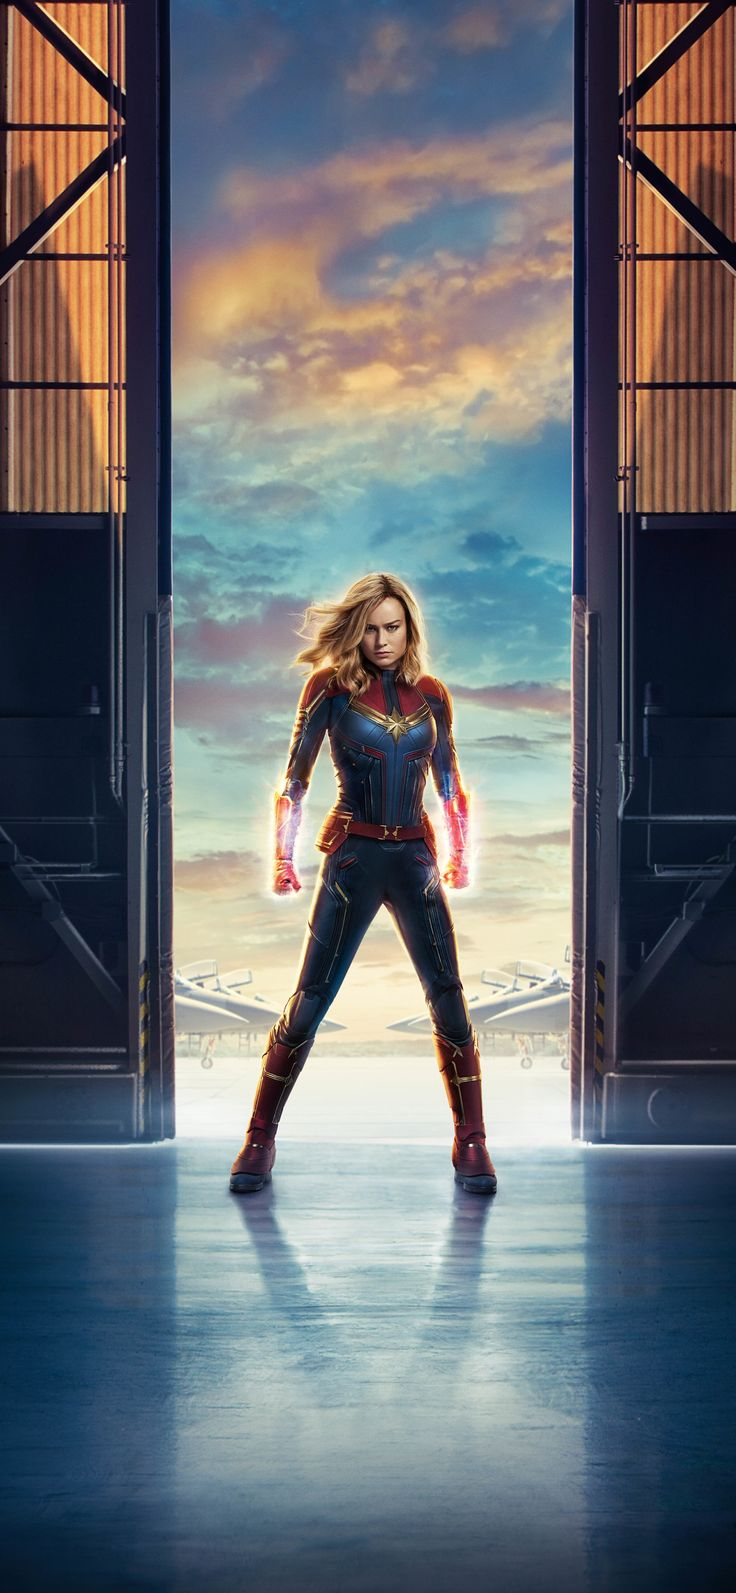 1125x2436 Captain Marvel Movie 10k Iphone XS,Iphone 10,Iphone X HD 4k Wallpapers...